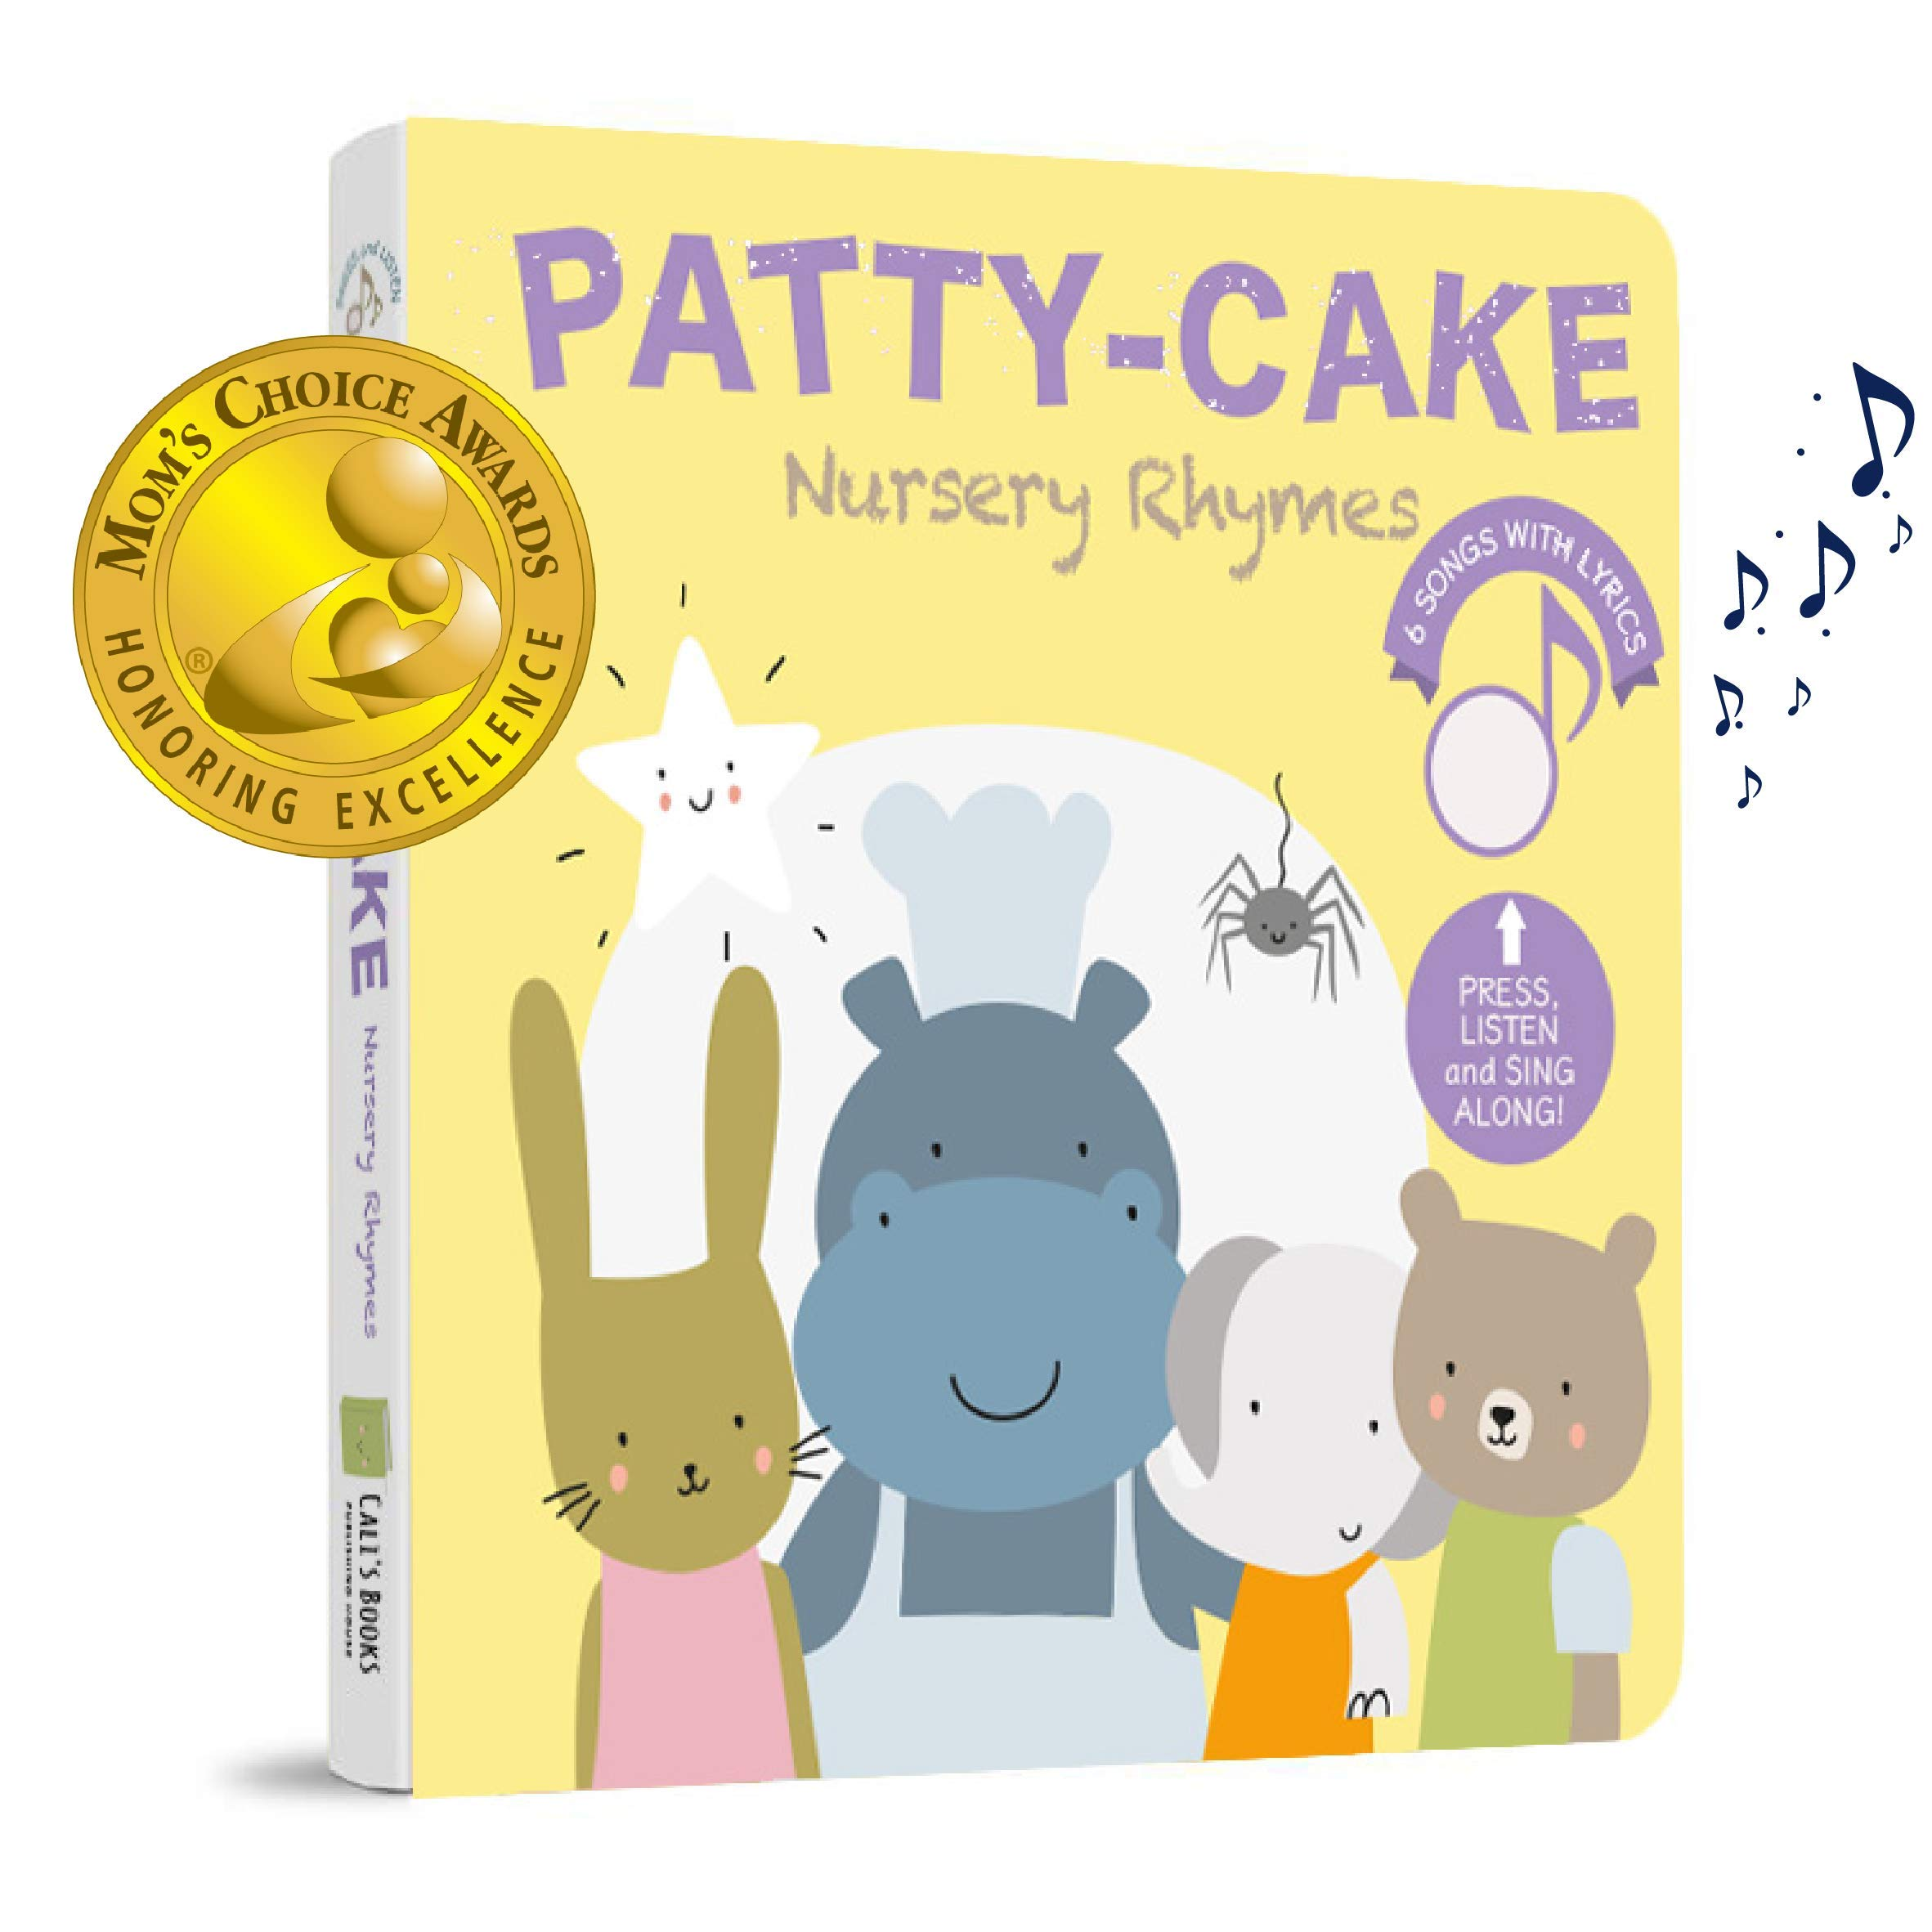 Patty Cake and Favorites Nursery Rhymes (Mom's Choice Award Winner) - Press, Listen and Sing Along! Sound Book - Best Interactive and Educational Gift for Baby, Toddler, 1- 4 Year Old Girl and Boy